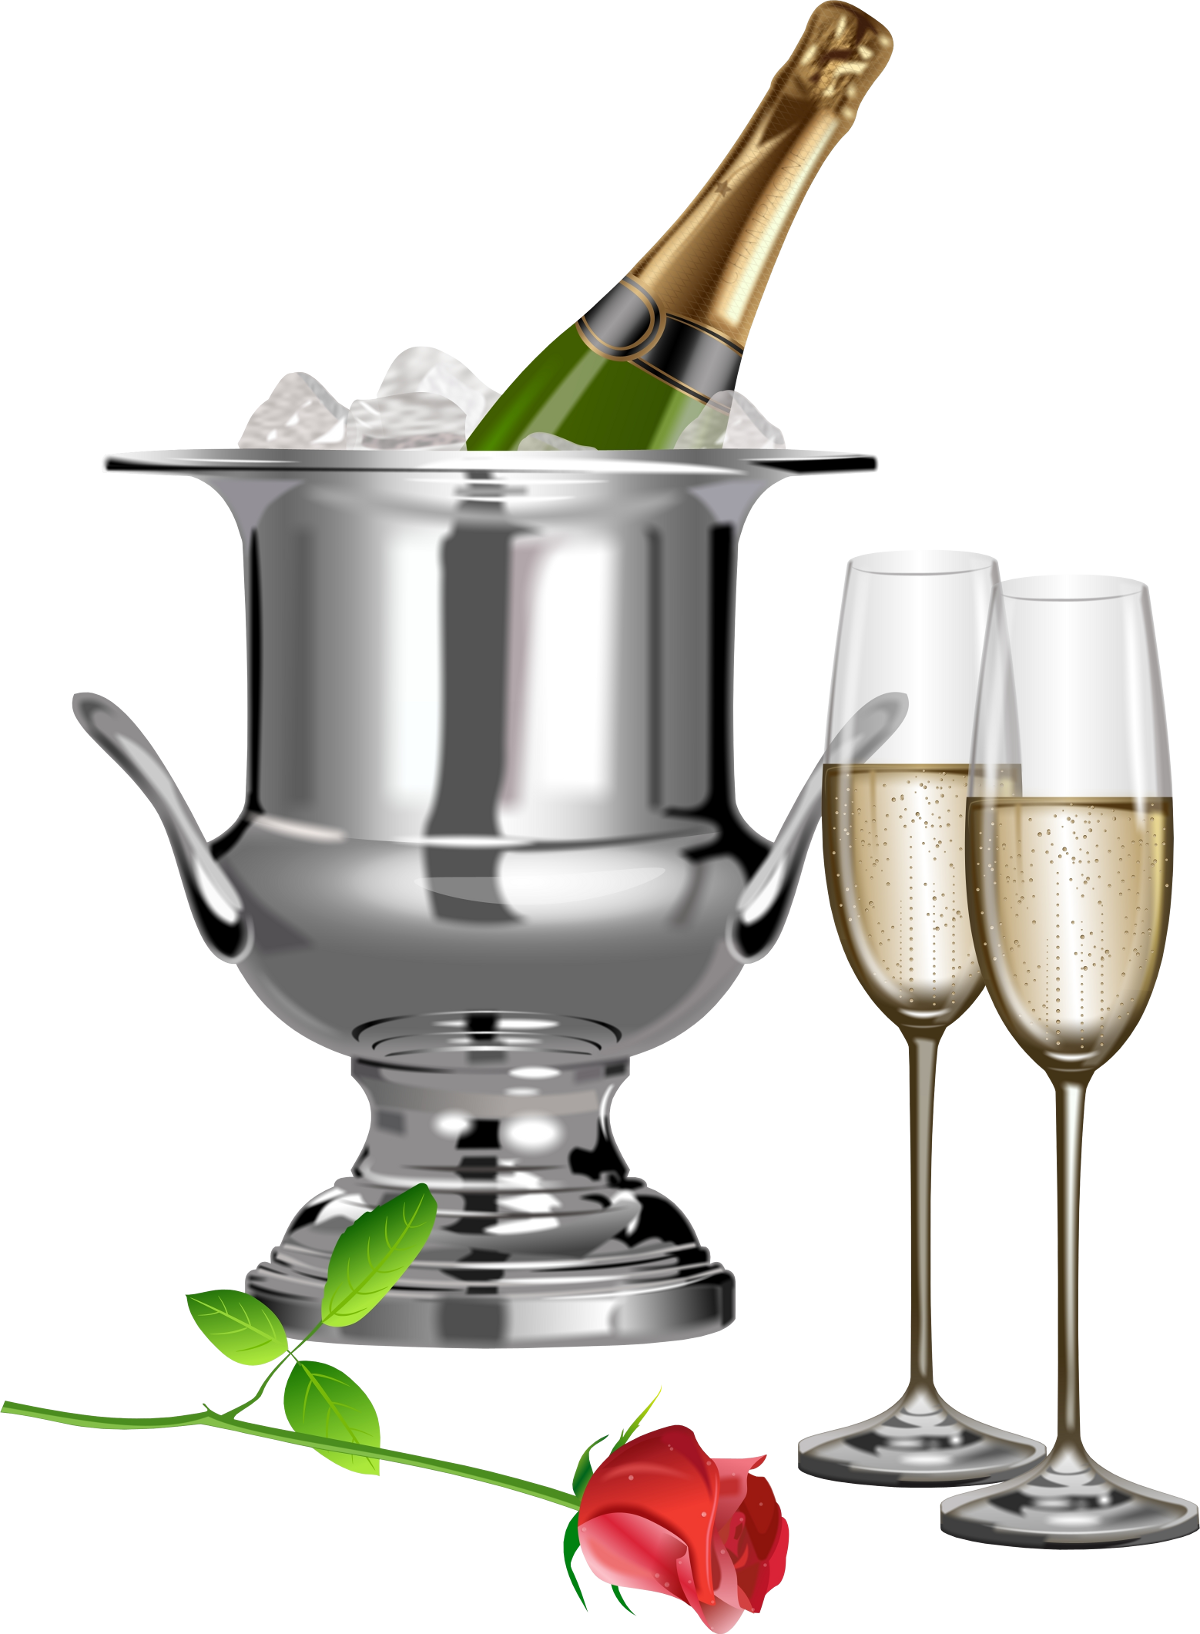 Free Champagne Bottle Clipart, Download Free Clip Art, Free.